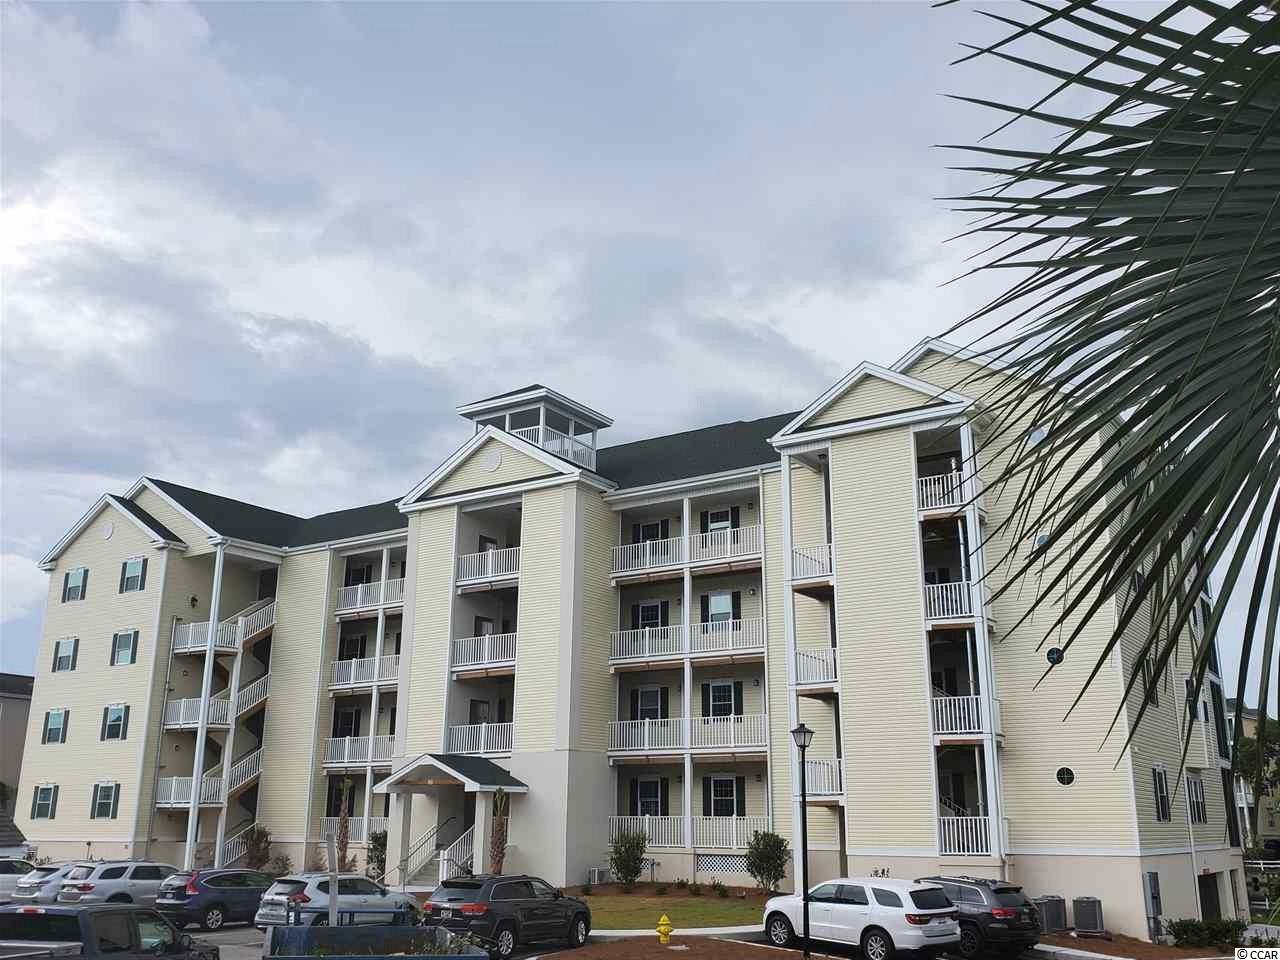 """Pre-Construction - Building #25.  Don't miss your chance to """"go coastal"""" and own a villa in the last condo building site in desirable Ocean Keyes.  Condo Building is closest to the beach with a beautiful view overlooking a pond with fountain.   - Edisto Floor Plan (2BR/2BA with Study) 1347 Heated SF   Choose your colors and options from many selections and upgrades.  Your villa will convey with one assigned reserved parking space under the building and a detached storage closet.  Golf cart spaces are available to for the first 18 buyers - 13 secured and 5 unsecured.  Large 3,500 lb. elevator.  Notable features include Vinyl Plank Flooring throughout standard, one accessible roll-in shower, granite countertops in kitchen, GE kitchen appliances, birch cabinets, walk-in closet in Master Bedroom, and a spacious rear porch off the living area.   Ocean Keyes is an exclusive gated community located within walking distance of the beach in the Ocean Drive section of North Myrtle Beach.  Beautifully landscaped with trees, lakes and ponds with fountains. Amenities include 6-50 ft swimming pools with hot tubs and sun decks, 4-kiddie pools, 2-tennis courts, fitness facility, clubhouses, and barbecue areas with picnic tables and grills. Only 2 blocks from Main Street for enjoyment of restaurants, shopping and entertainment and easy access to all areas of the Grand Strand.   All measurements and square footage are approximate and not guaranteed. Buyer is responsible for verification."""